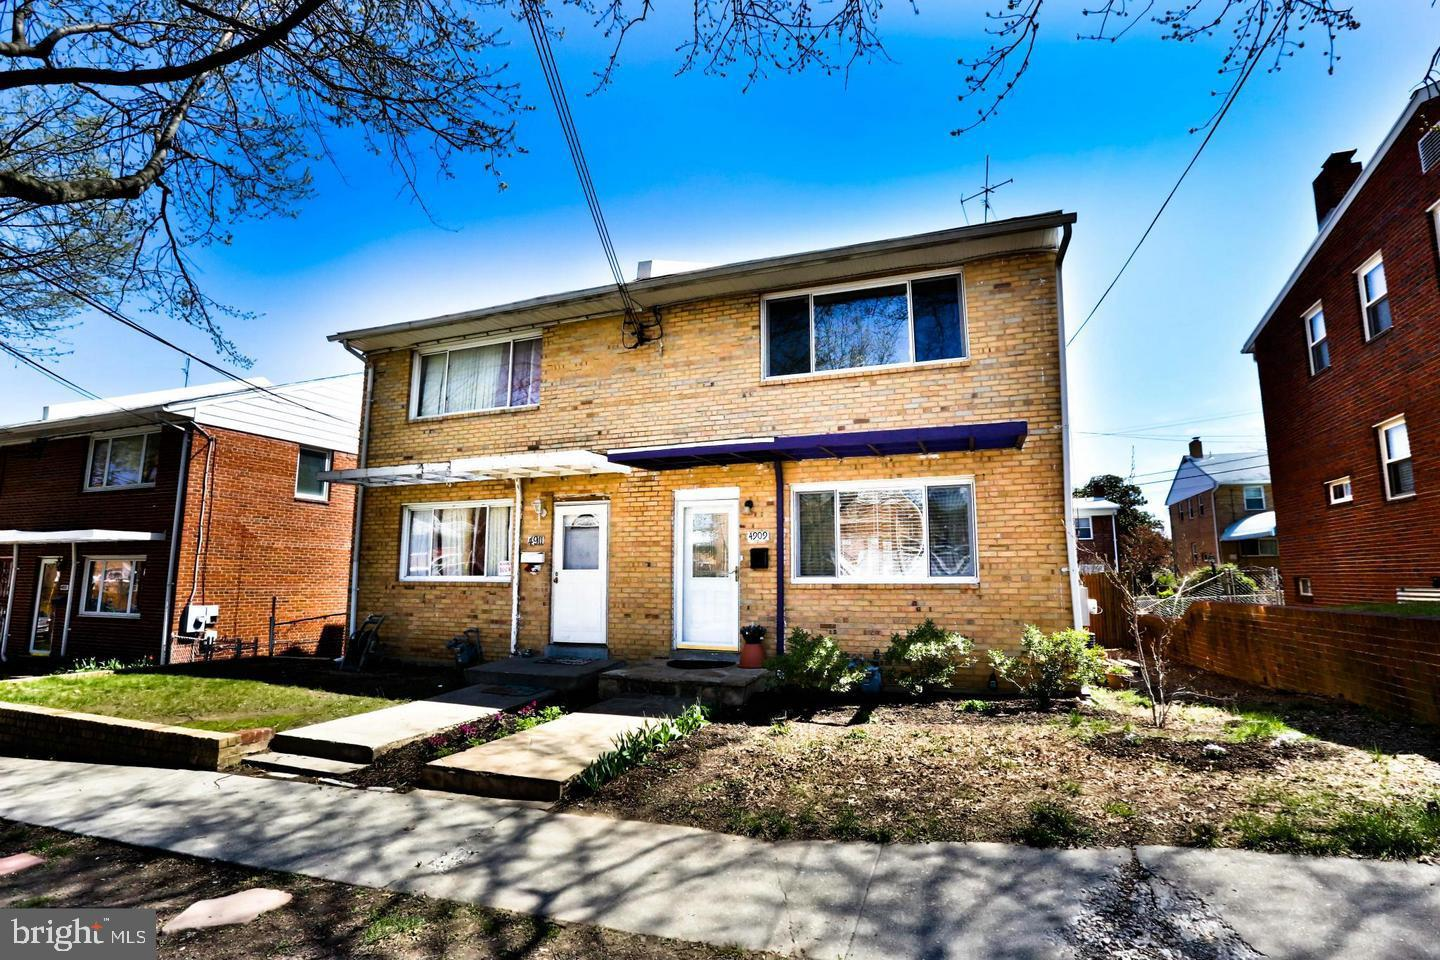 Located in the Fort Totten neighborhood, this three-bedroom, two-bath house is nestled on a quiet st